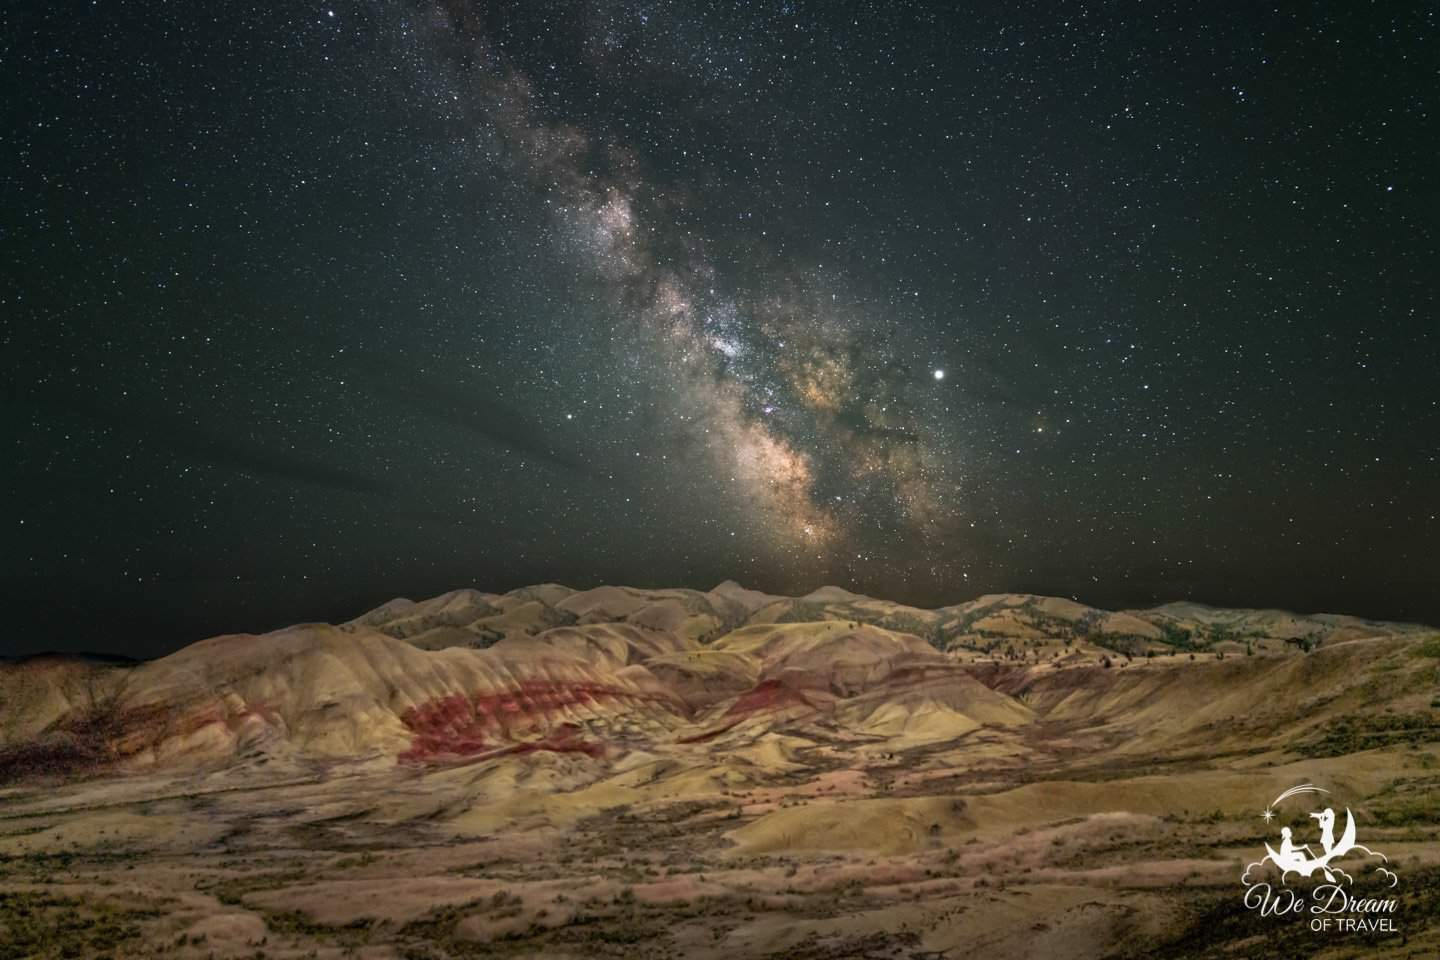 Night photography above the Oregon Painted Hills featuring the Milky Way galaxy rising.